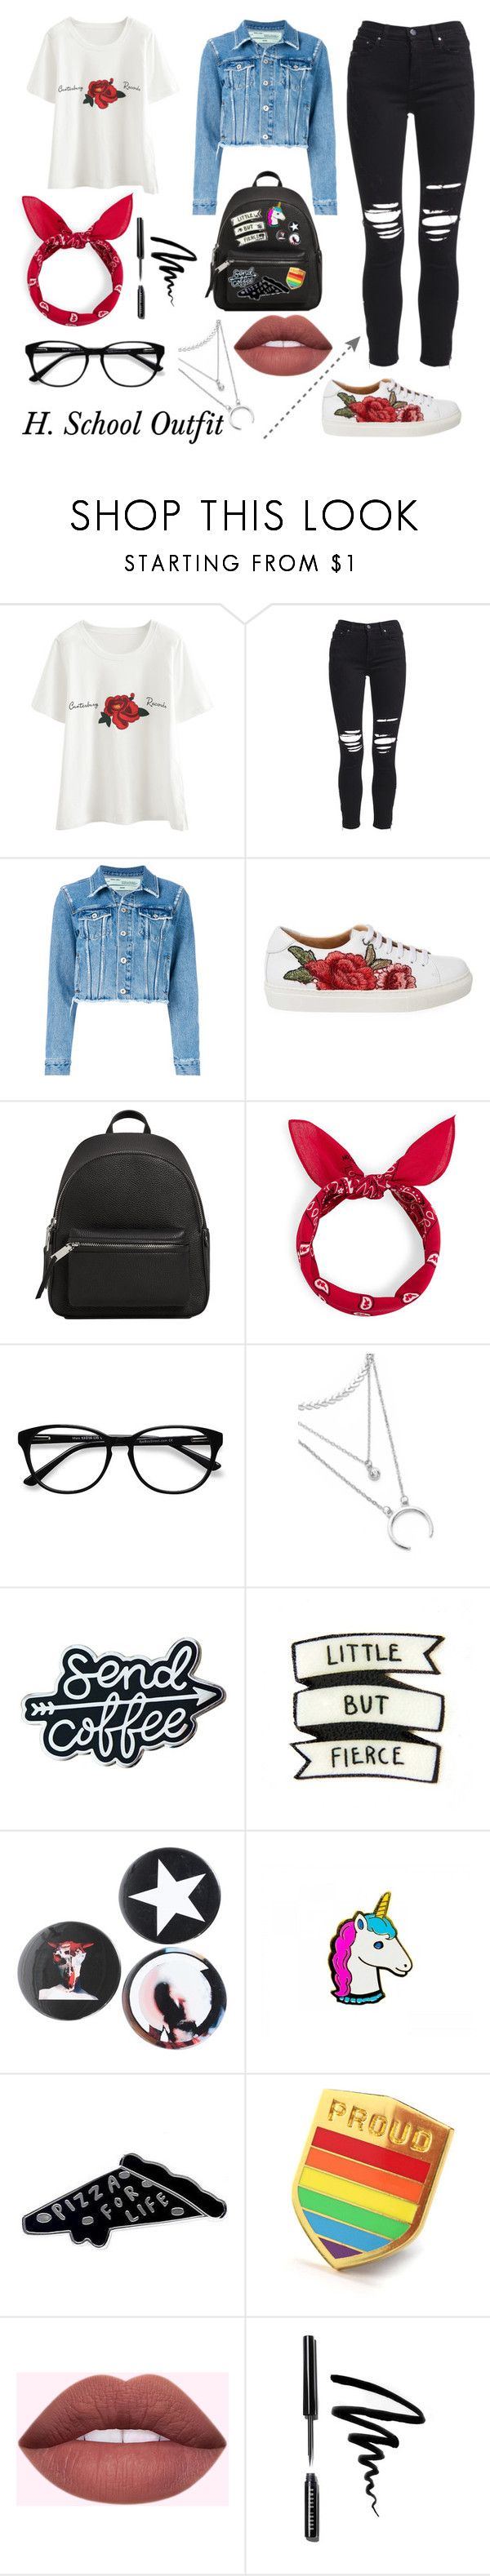 """H. School Outfit"" by emina01 ❤ liked on Polyvore featuring AMIRI, Off-White, MANGO, EyeBuyDirect.com, Givenchy and Bobbi Brown Cosmetics"